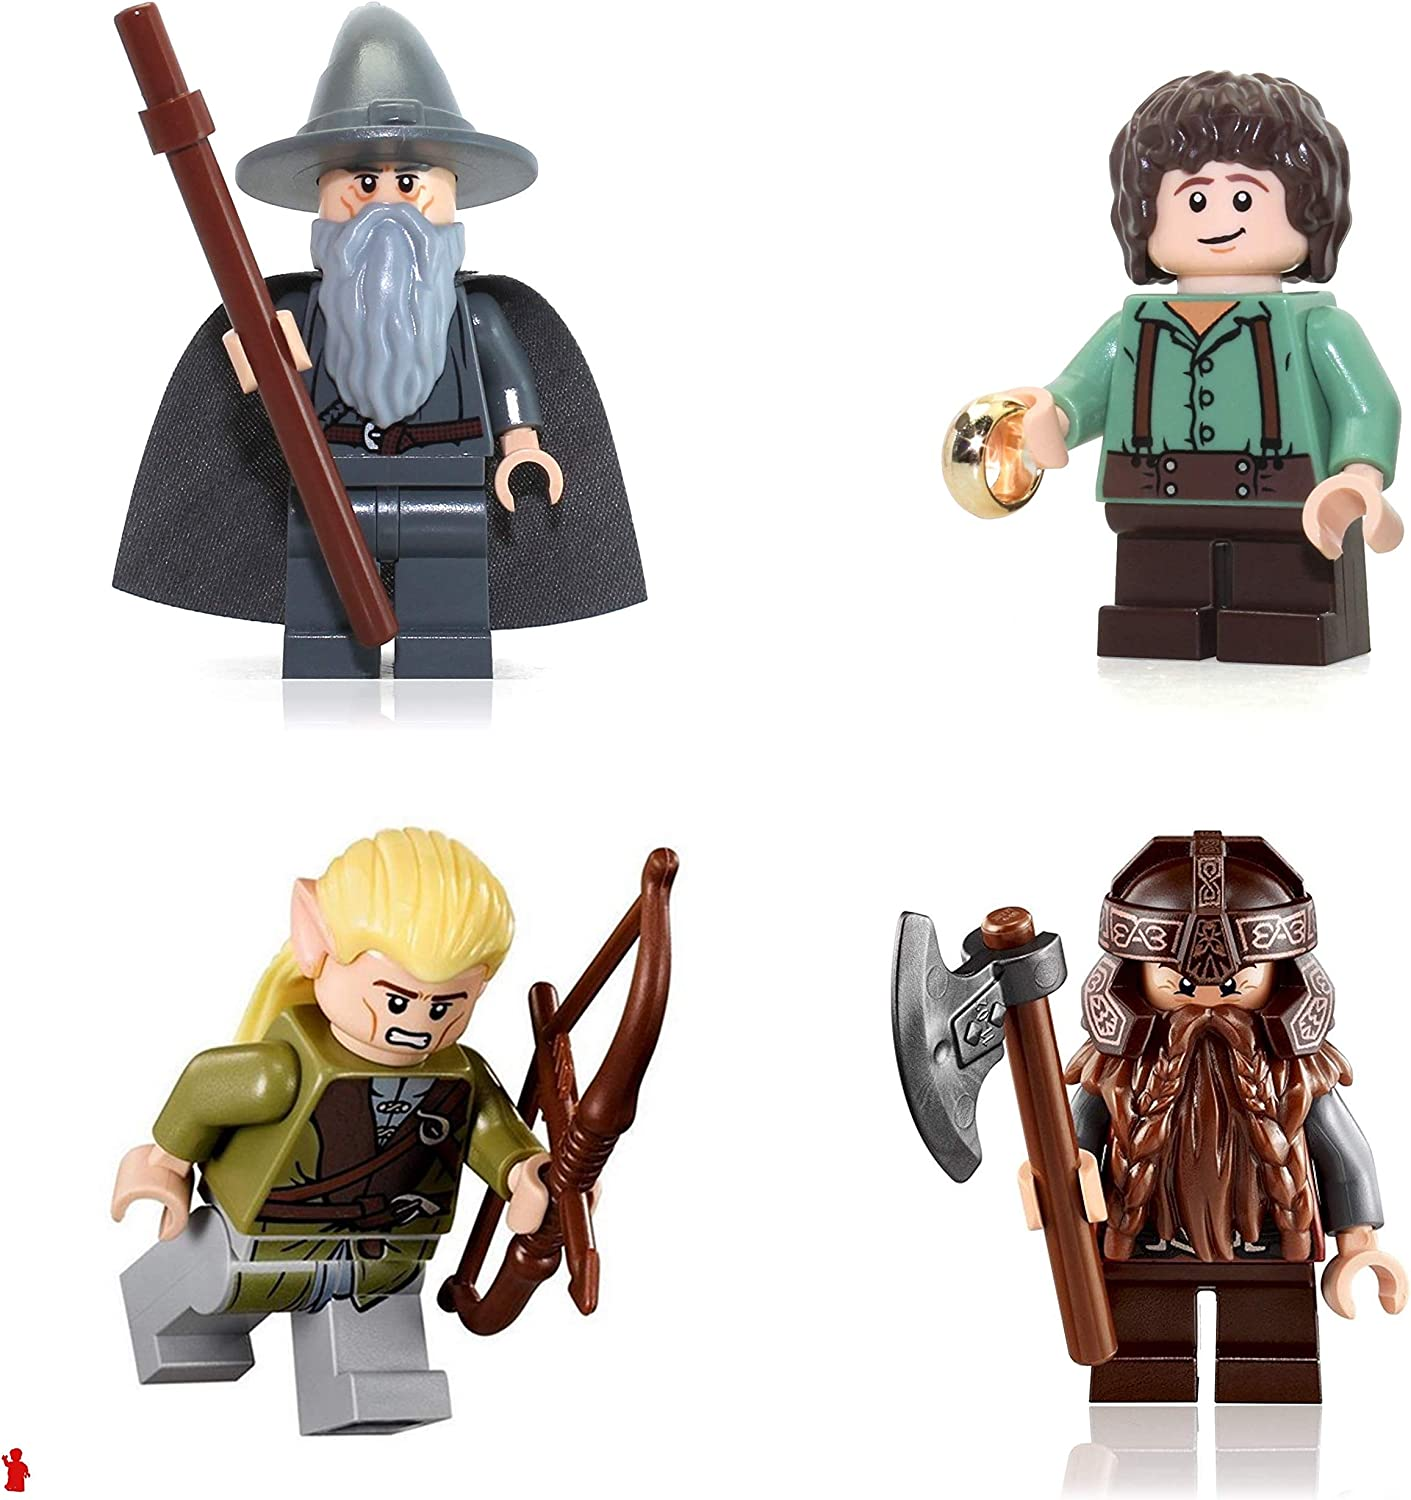 Lego the Lord of the Rings Minifigure Combo - Gandalf the Gray Wizard, Legolas, Gimli, and Frodo Baggins (With the One Ring)